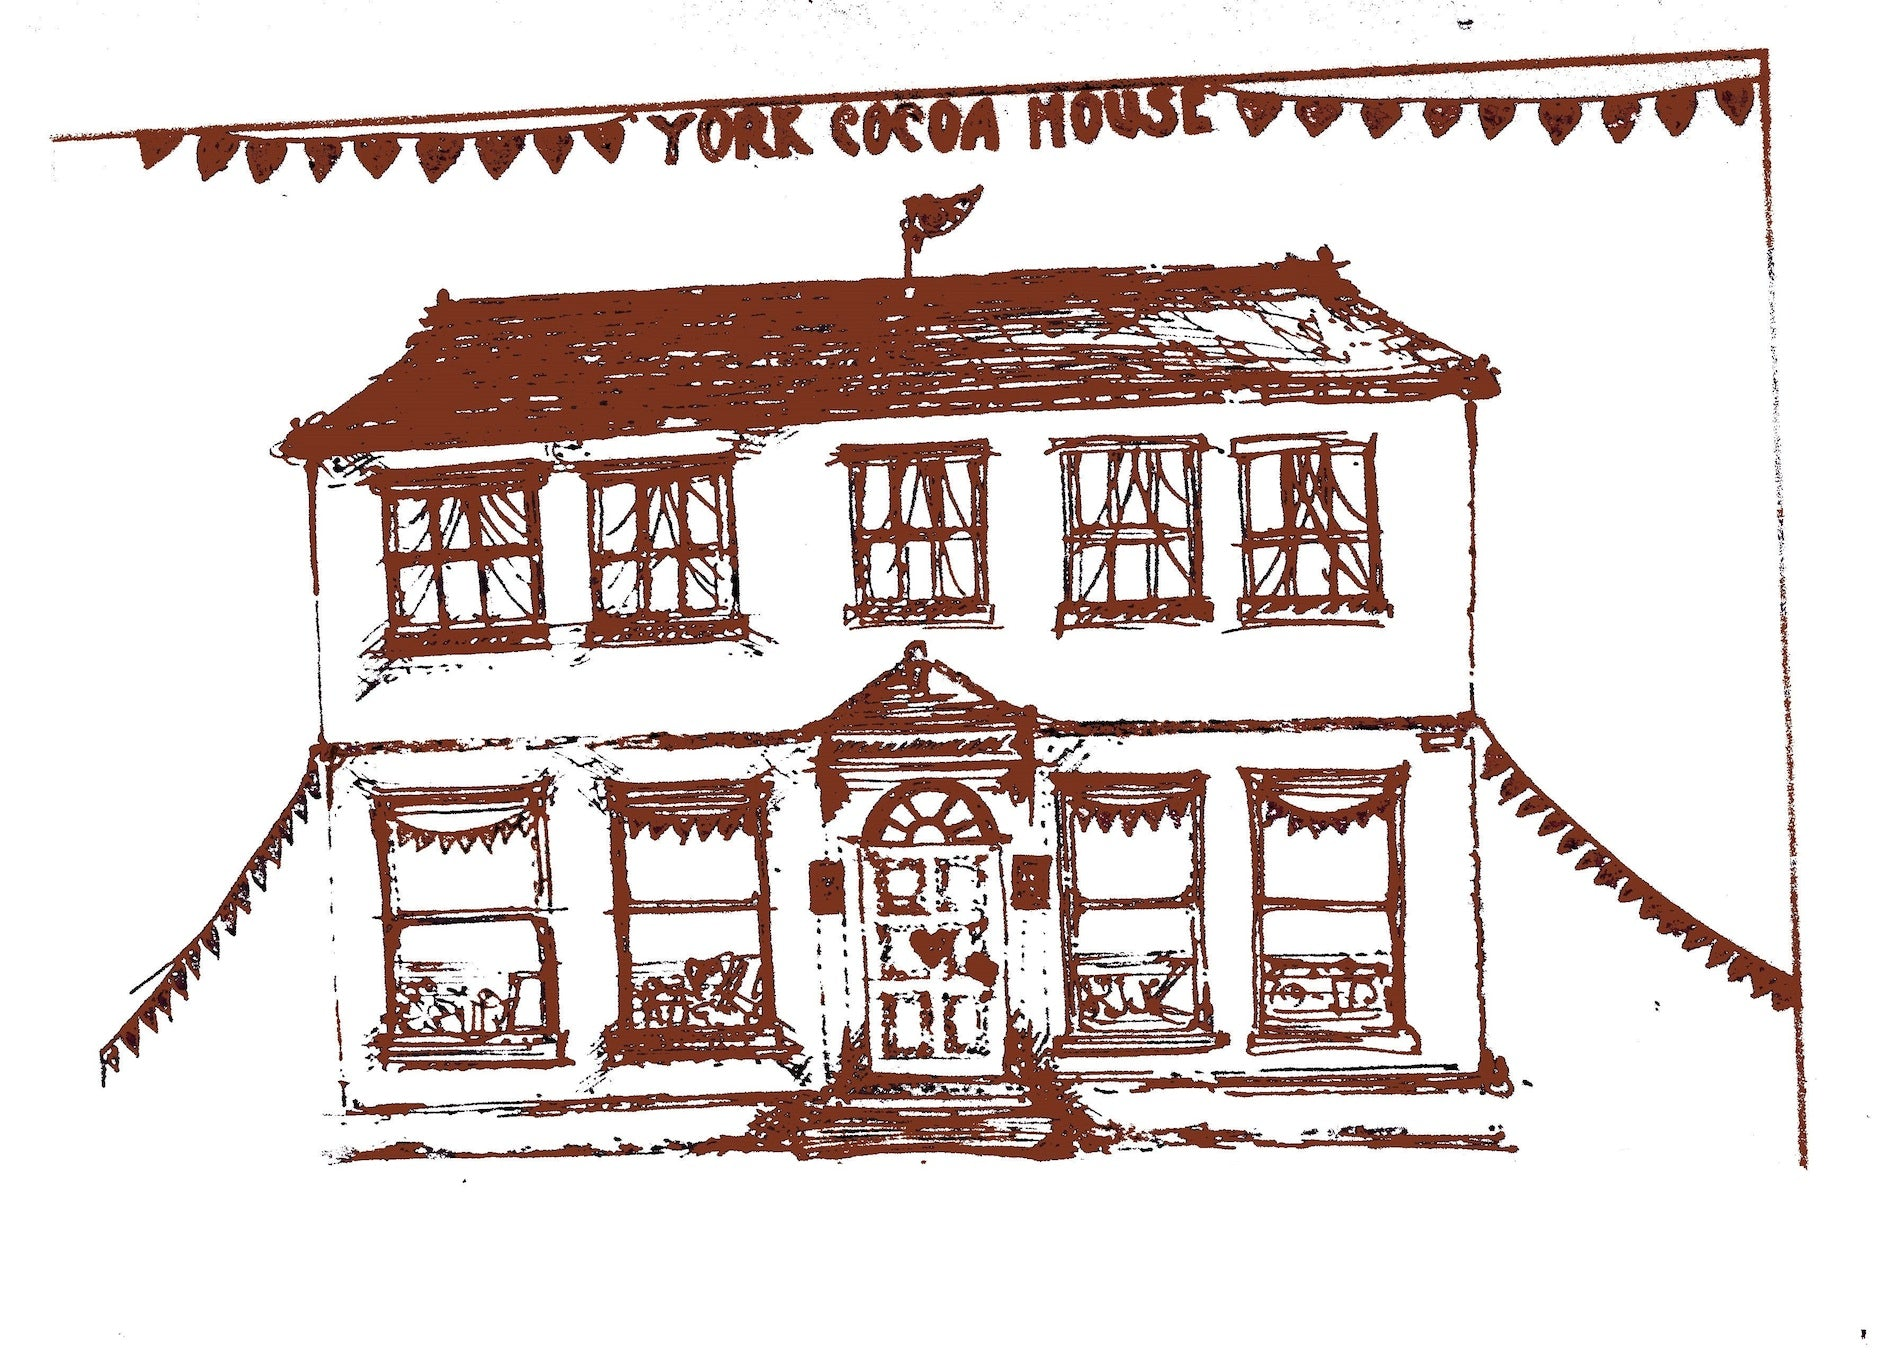 The Original York Cocoa House